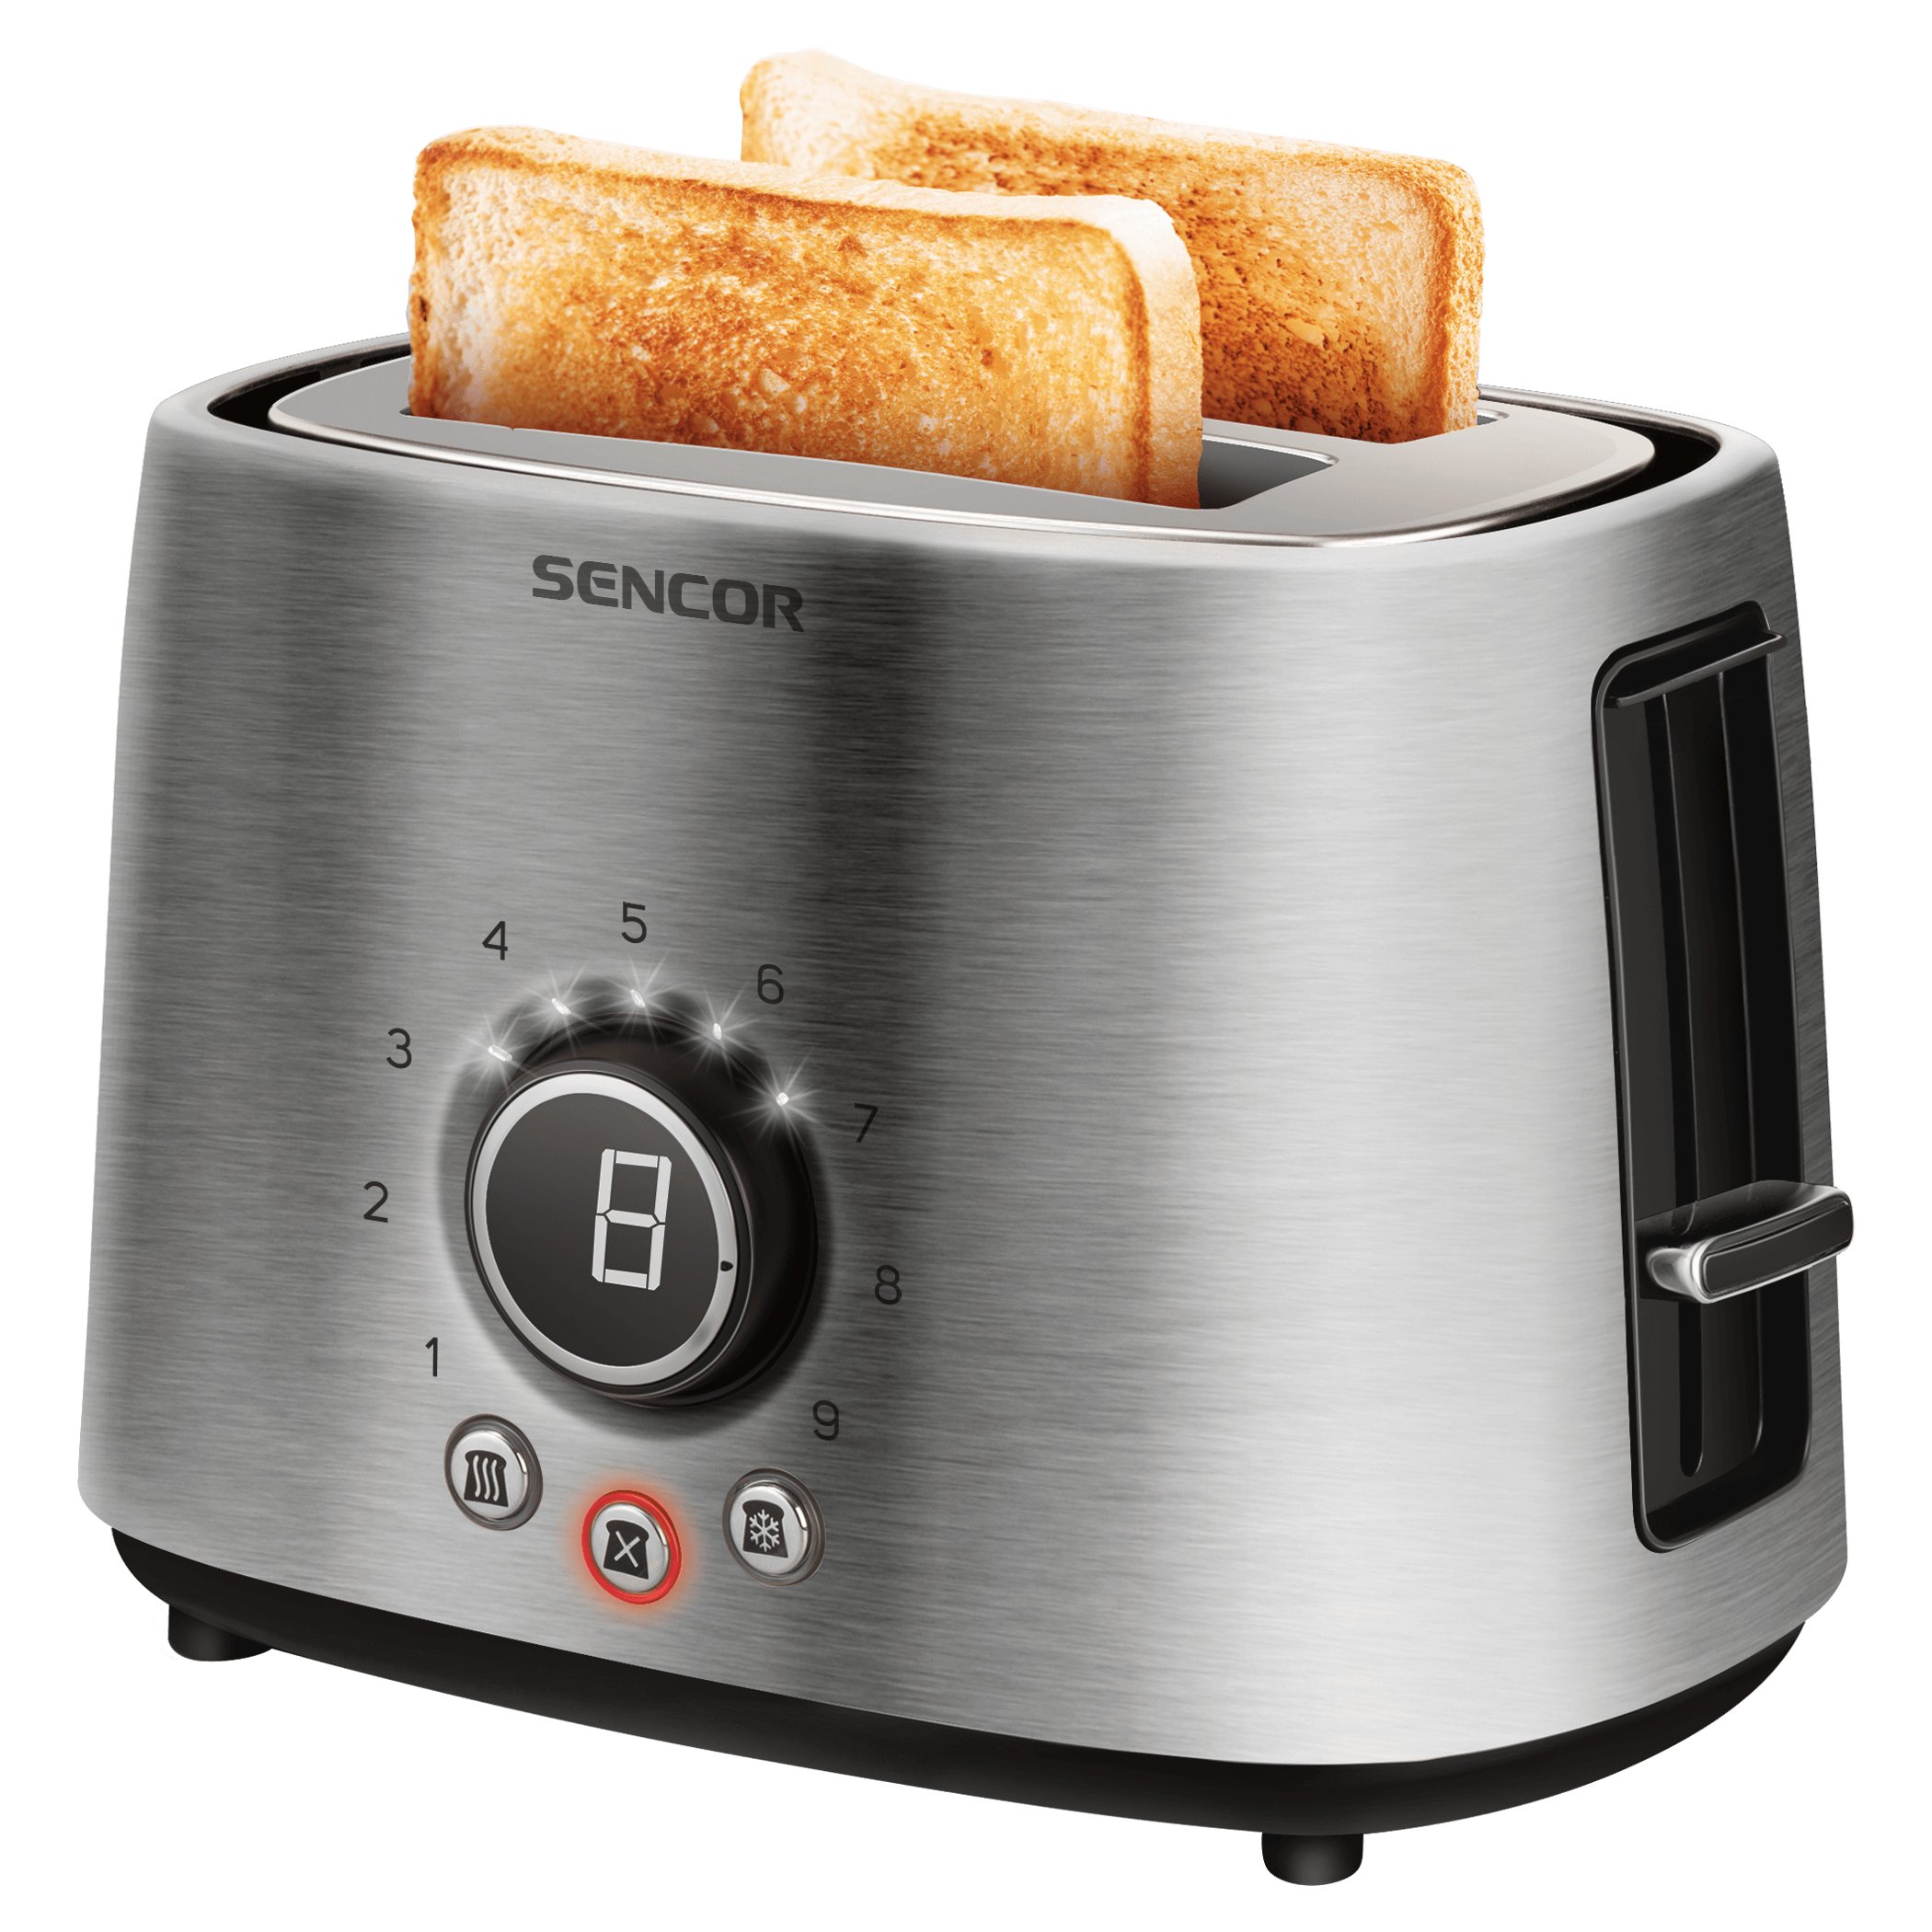 image library Toaster clipart electric. Sencor png image purepng